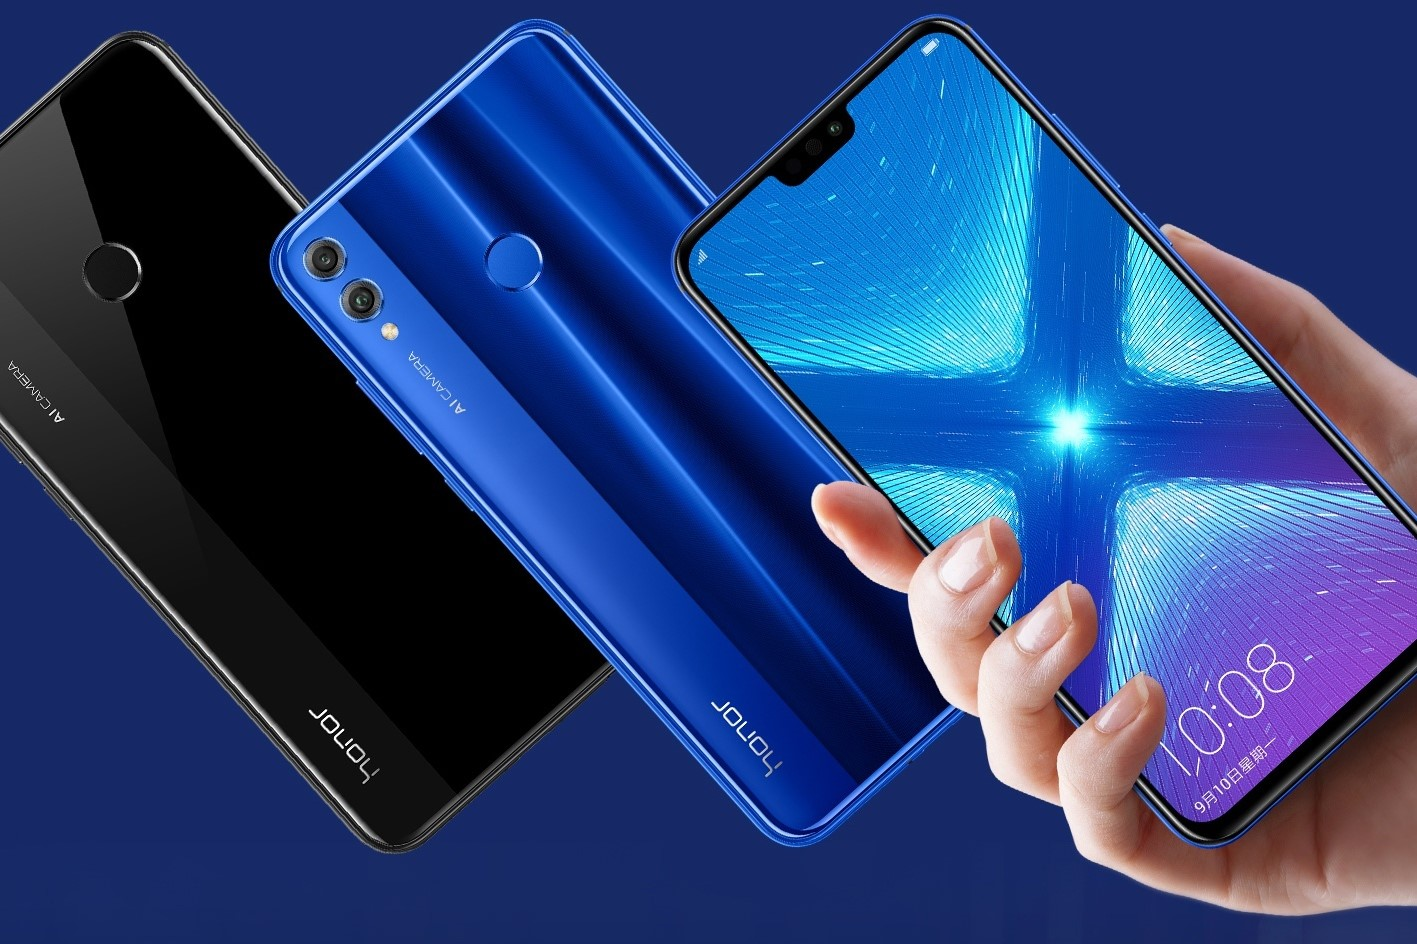 honor-8x-will-launch-globally-soon-us-release-in-the-pipeline-too